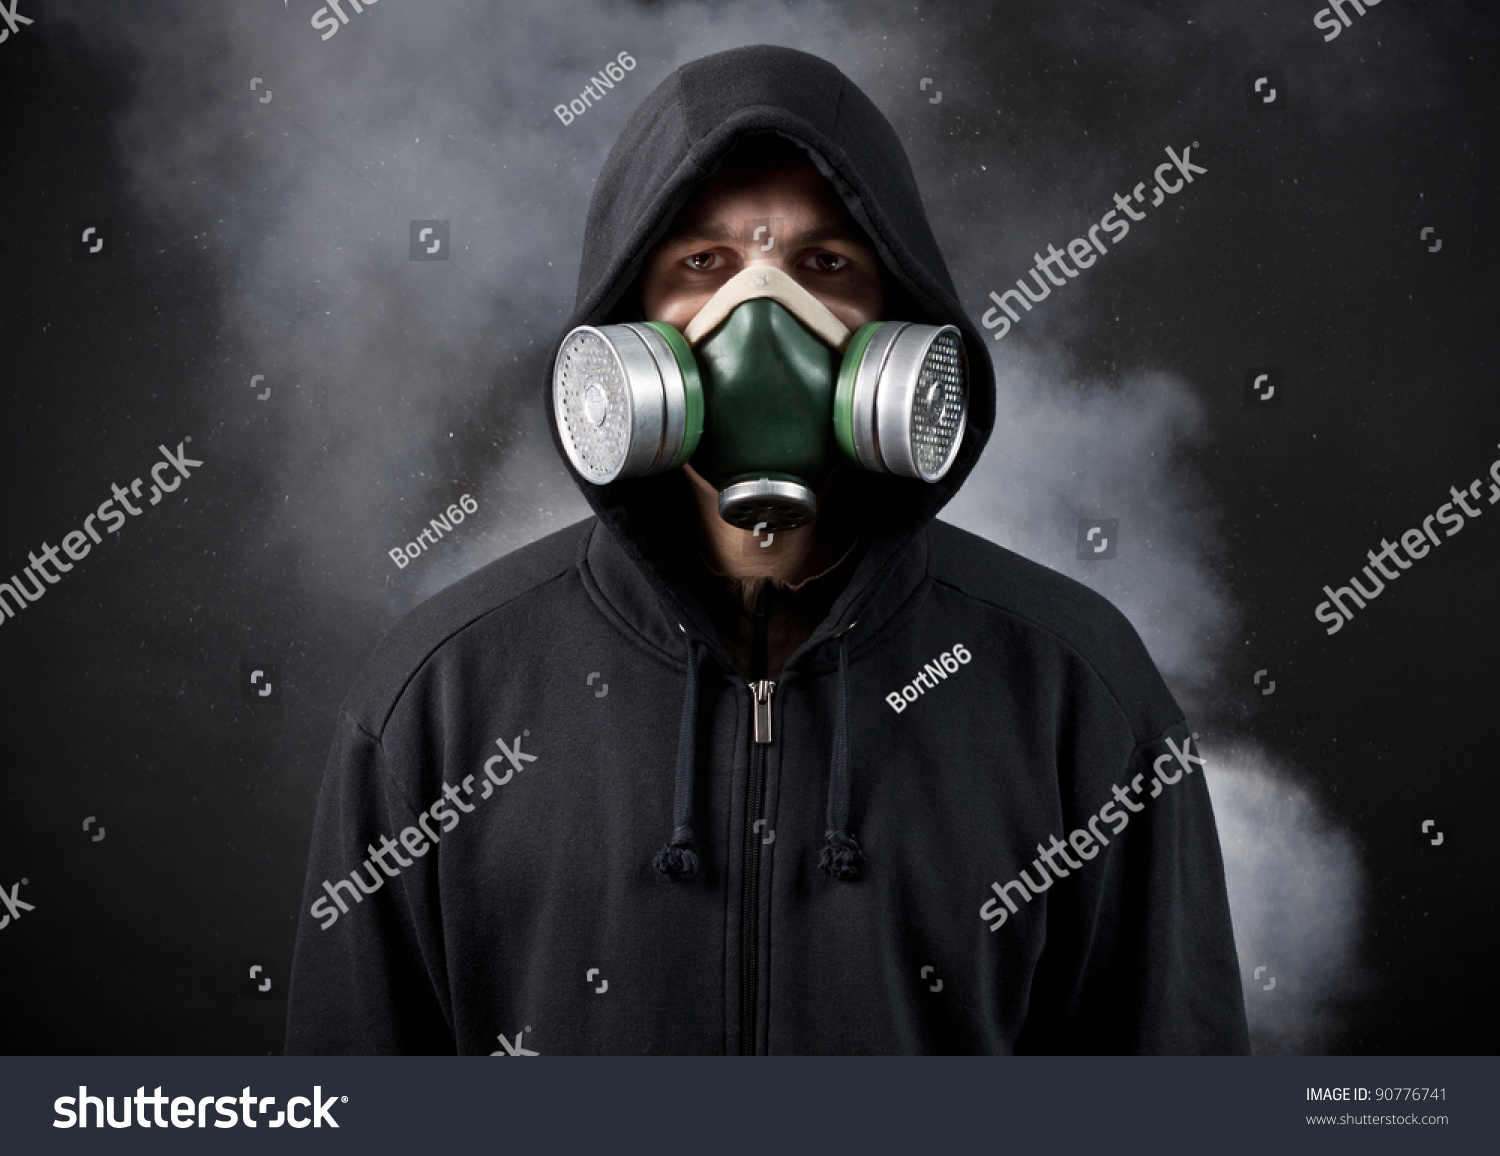 http://image.shutterstock.com/z/stock-photo-the-young-man-in-a-hood-and-in-a-respirator-90776741.jpg